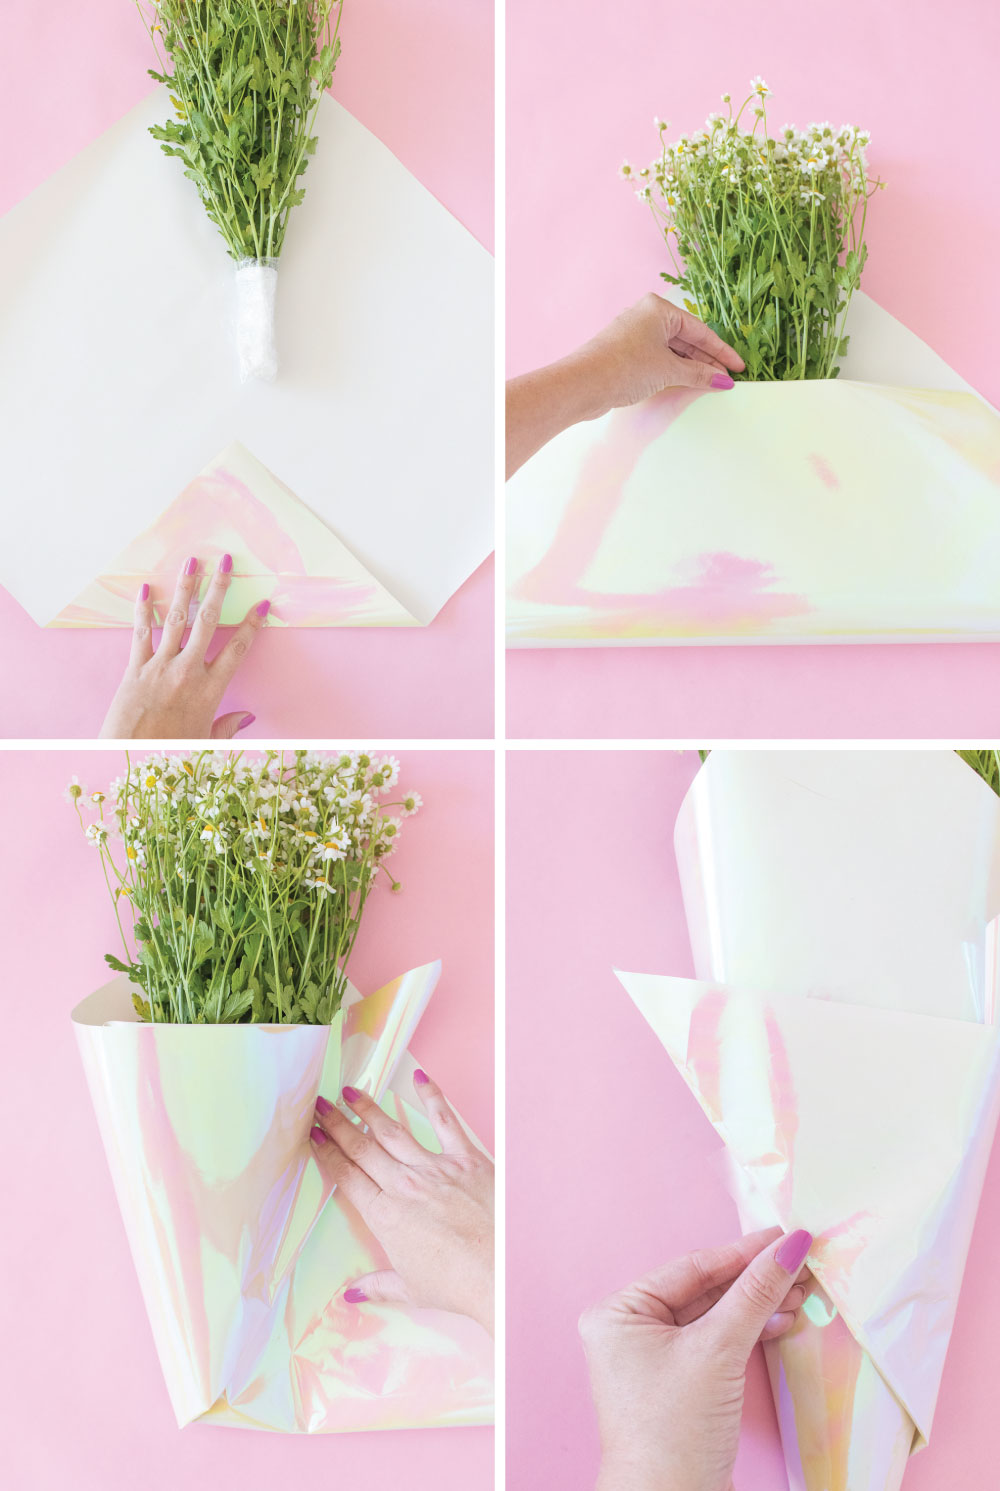 How to wrap a bouquet of flowers with wrapping paper bouquets for days how to wrap a bouquet of flowers with wrapping paper mightylinksfo